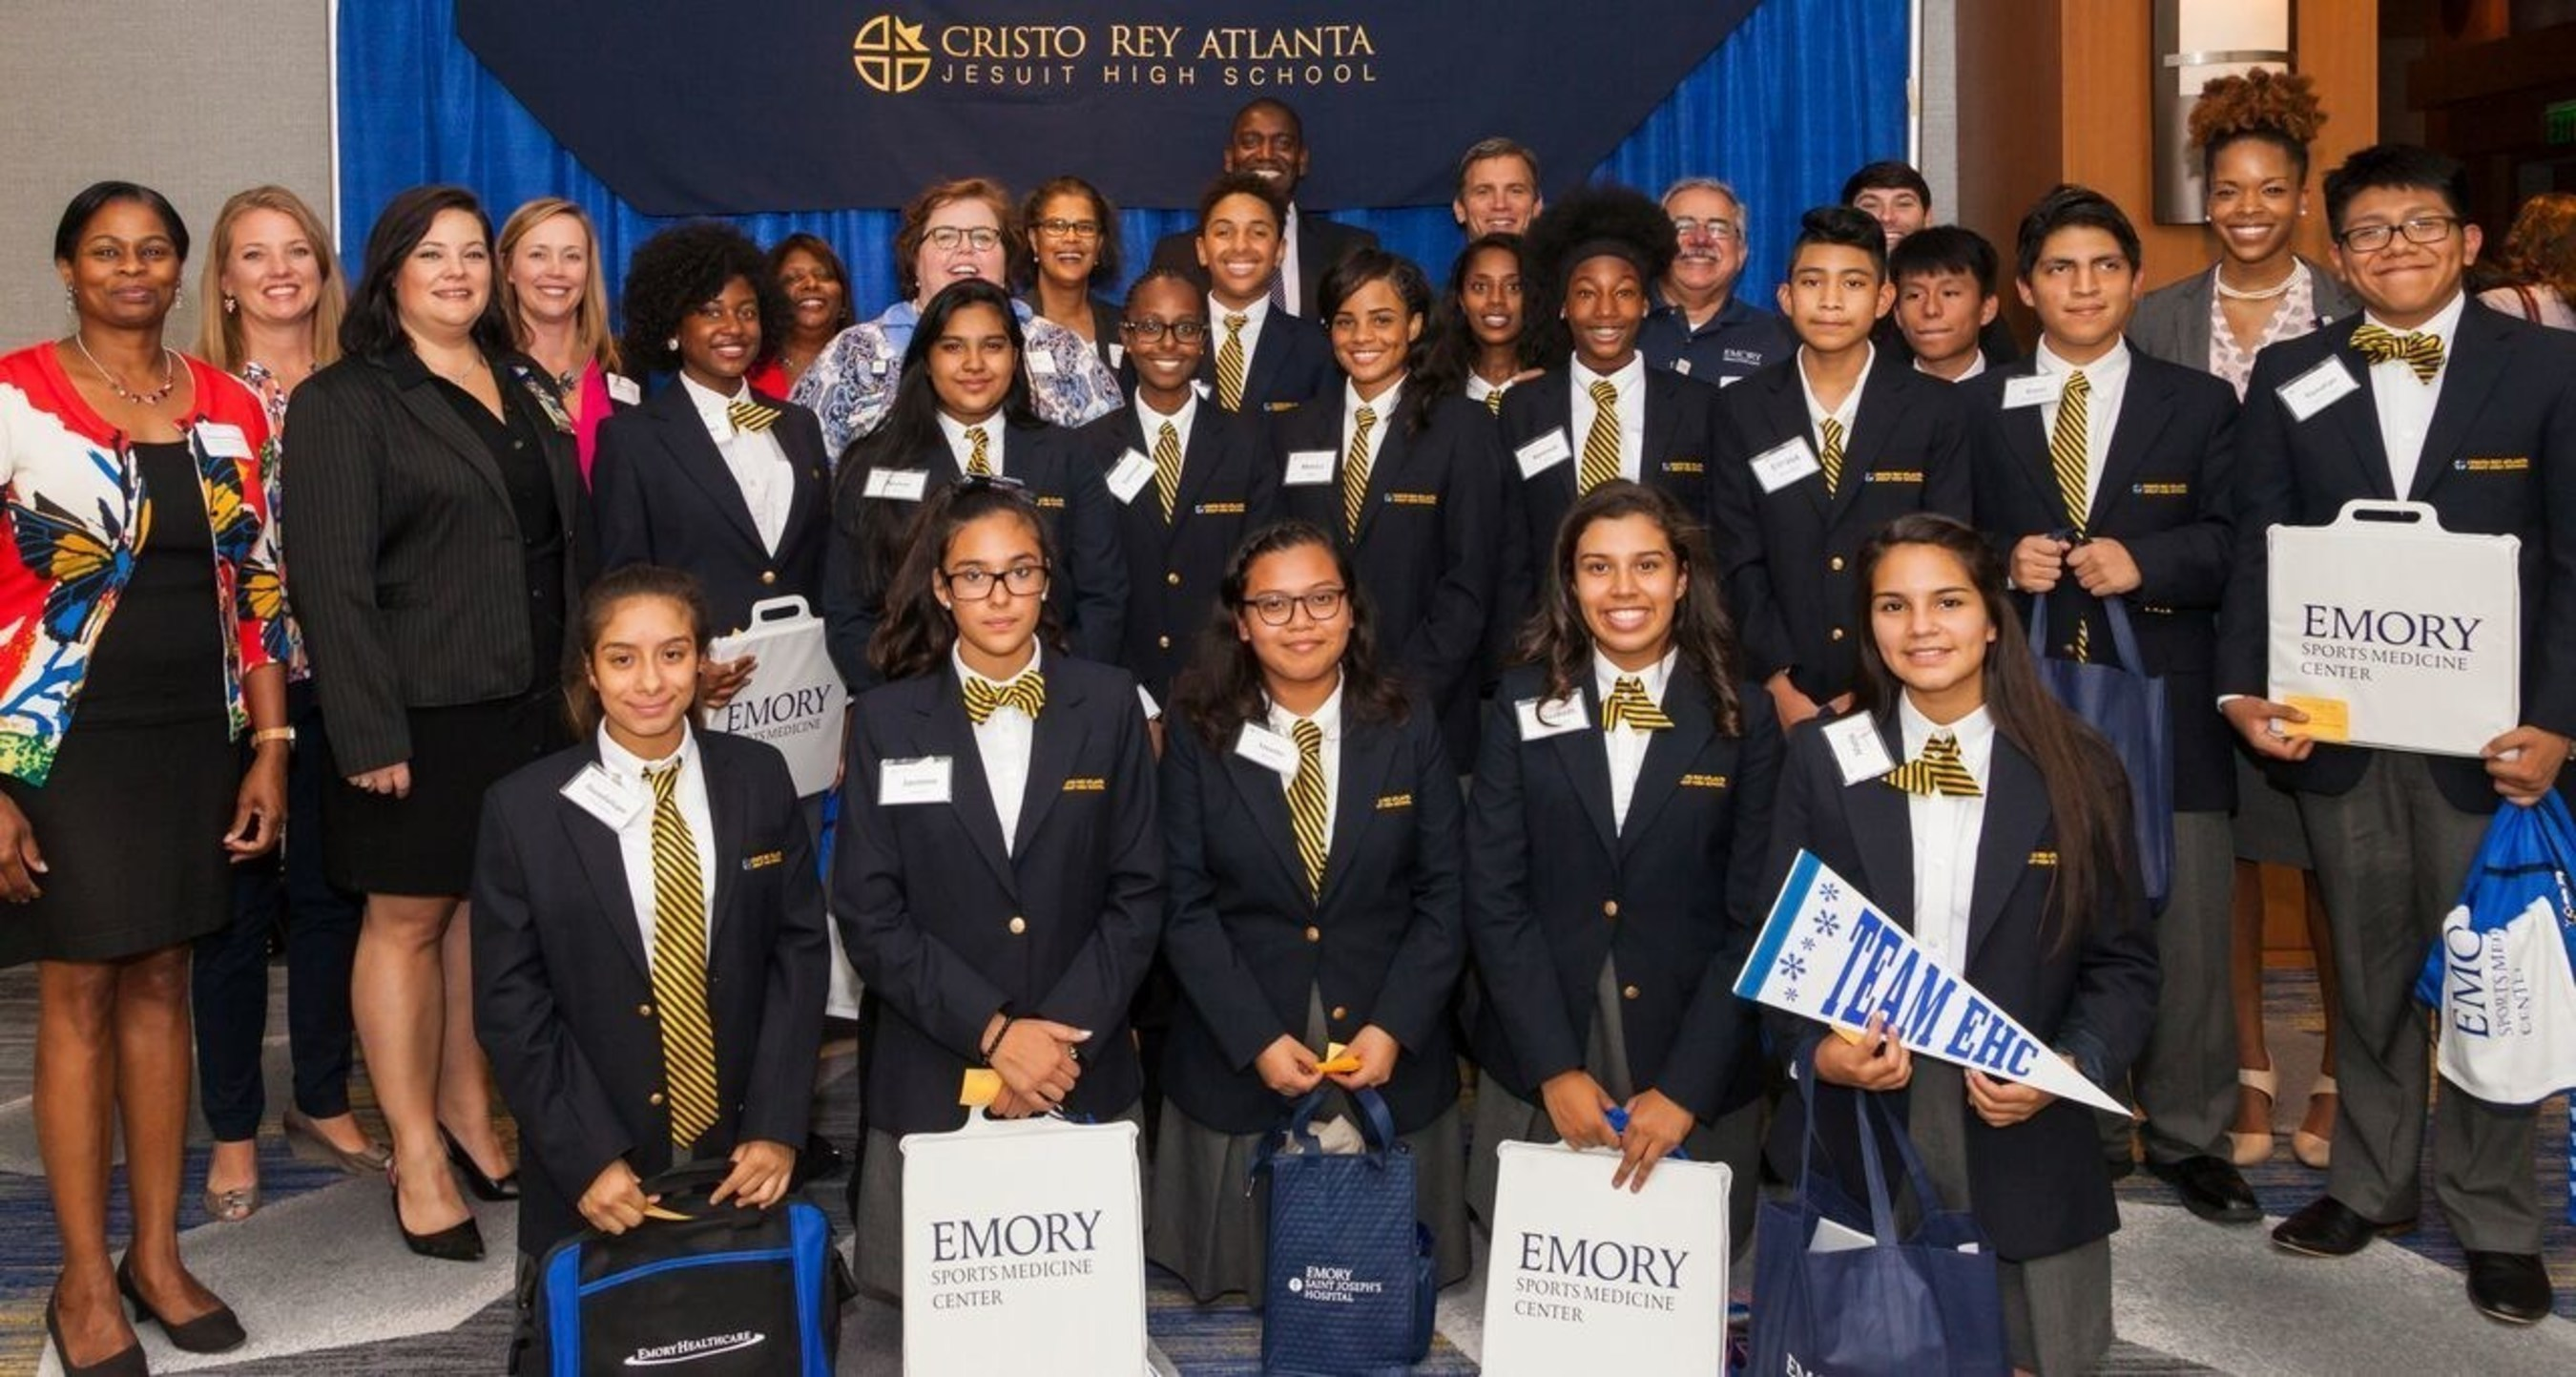 Image result for cristo rey atlanta high school